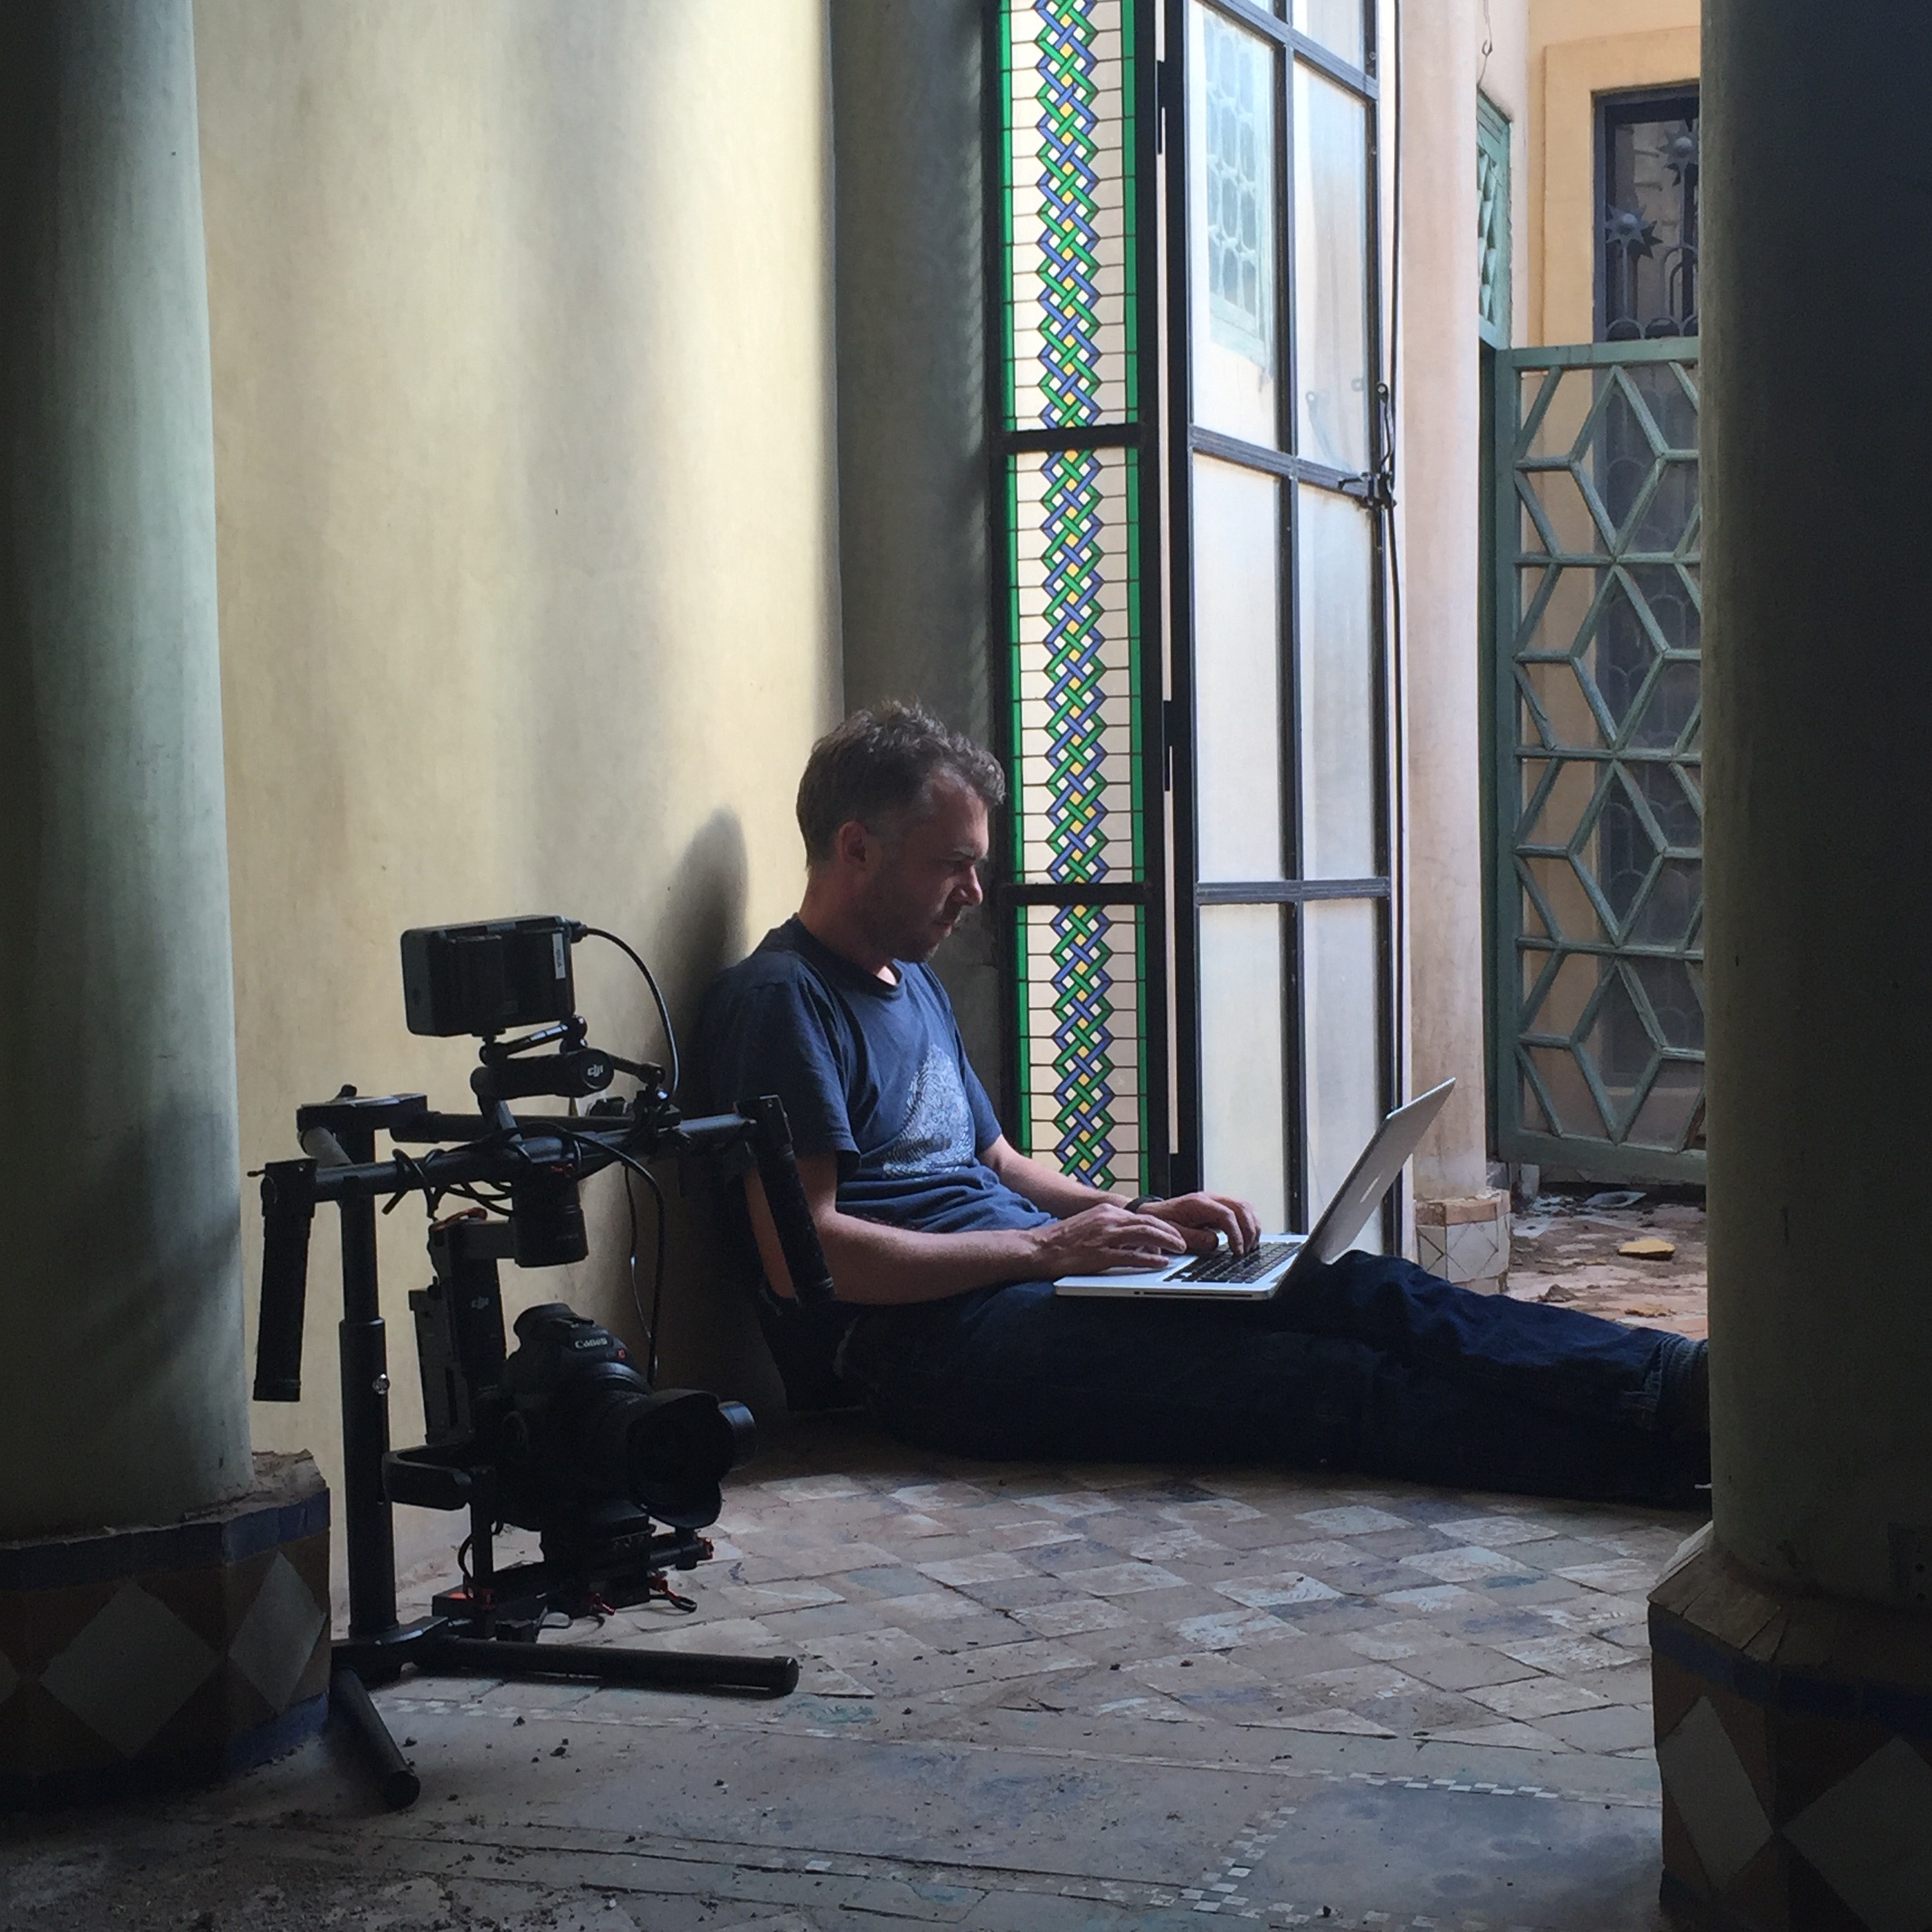 Editing the Bill Willis documentary on location in Marrakech. Project:  'Chasing Beauty' The Bill Willis Project.